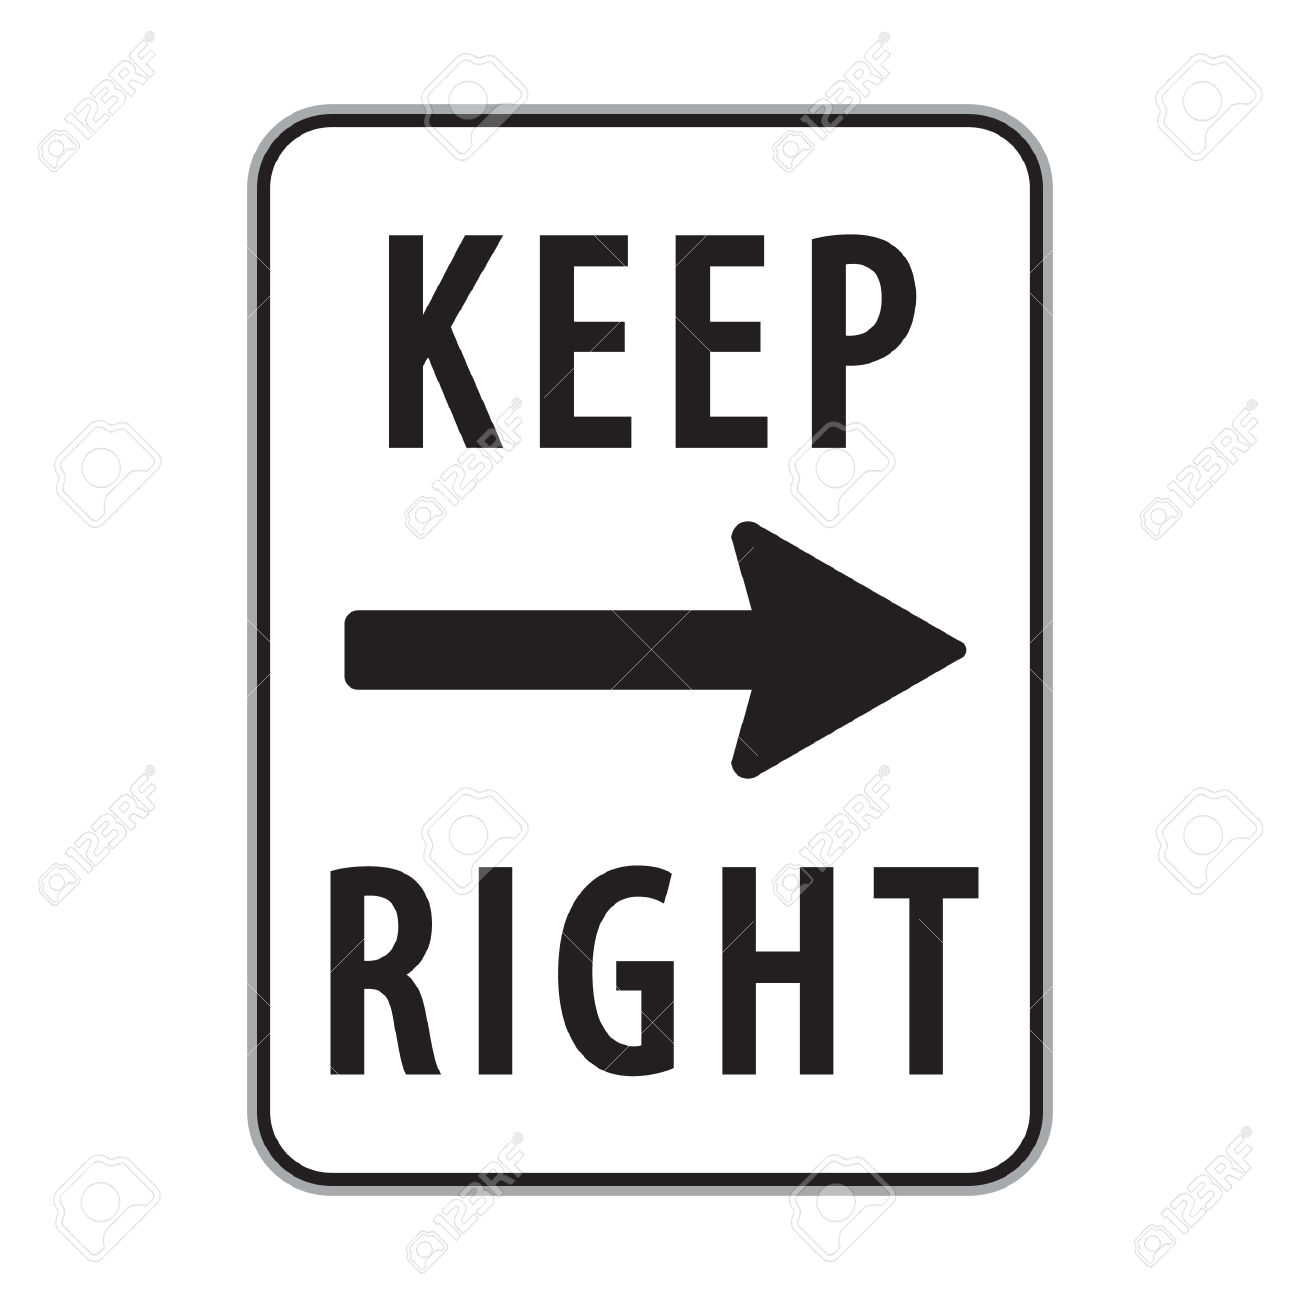 Keep Right Sign Royalty Free Cliparts, Vectors, And Stock.